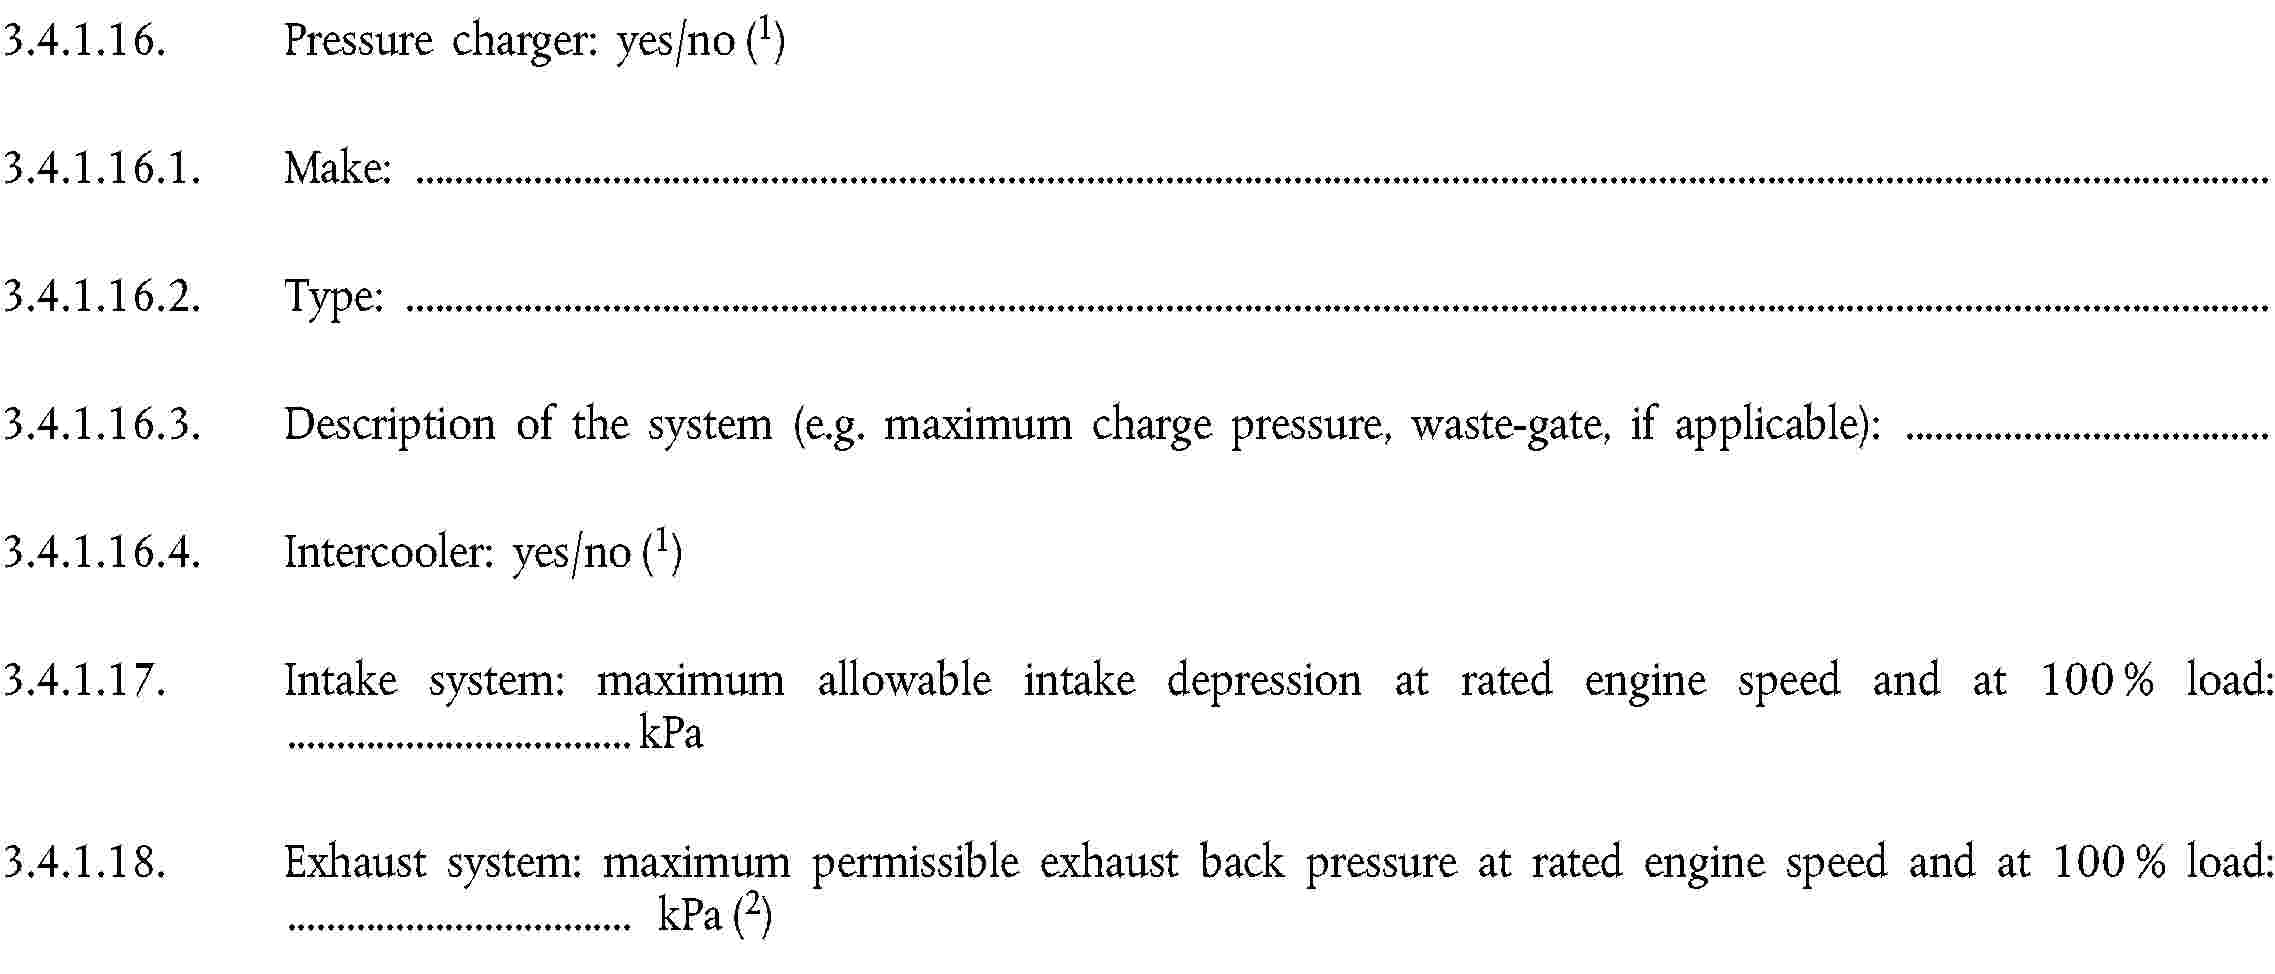 3.4.1.16. Pressure charger: yes/no (1)3.4.1.16.1. Make:3.4.1.16.2. Type:3.4.1.16.3. Description of the system (e.g. maximum charge pressure, waste-gate, if applicable):3.4.1.16.4. Intercooler: yes/no (1)3.4.1.17. Intake system: maximum allowable intake depression at rated engine speed and at 100 % load: … kPa3.4.1.18. Exhaust system: maximum permissible exhaust back pressure at rated engine speed and at 100 % load: … kPa (2)